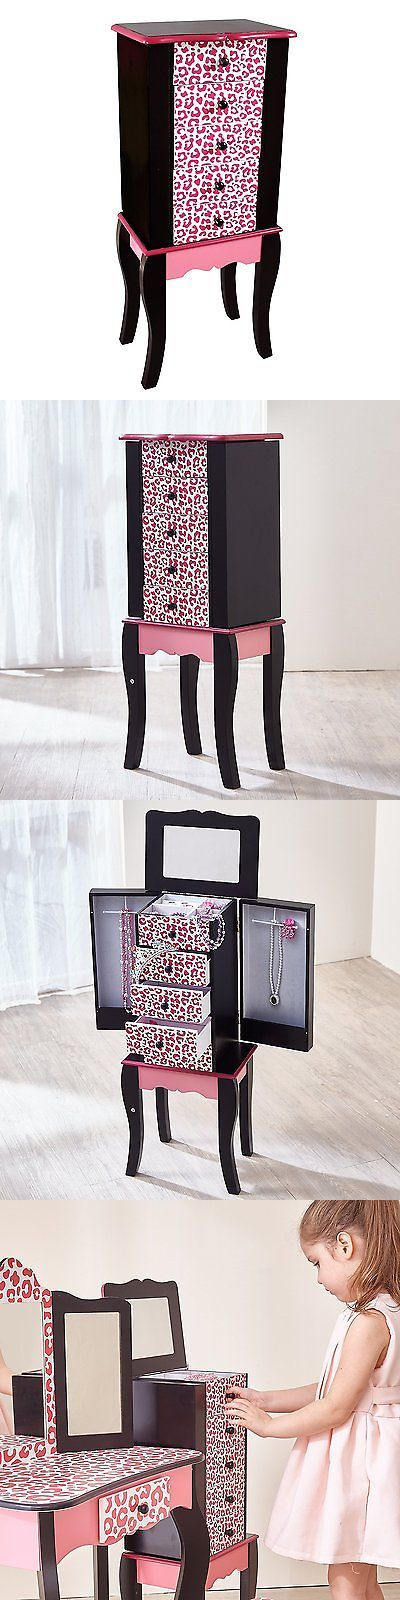 Kids Furniture: Teamson Kids Leopard Fashion Prints Jewelry Armoire, Pink/Black BUY IT NOW ONLY: $88.58